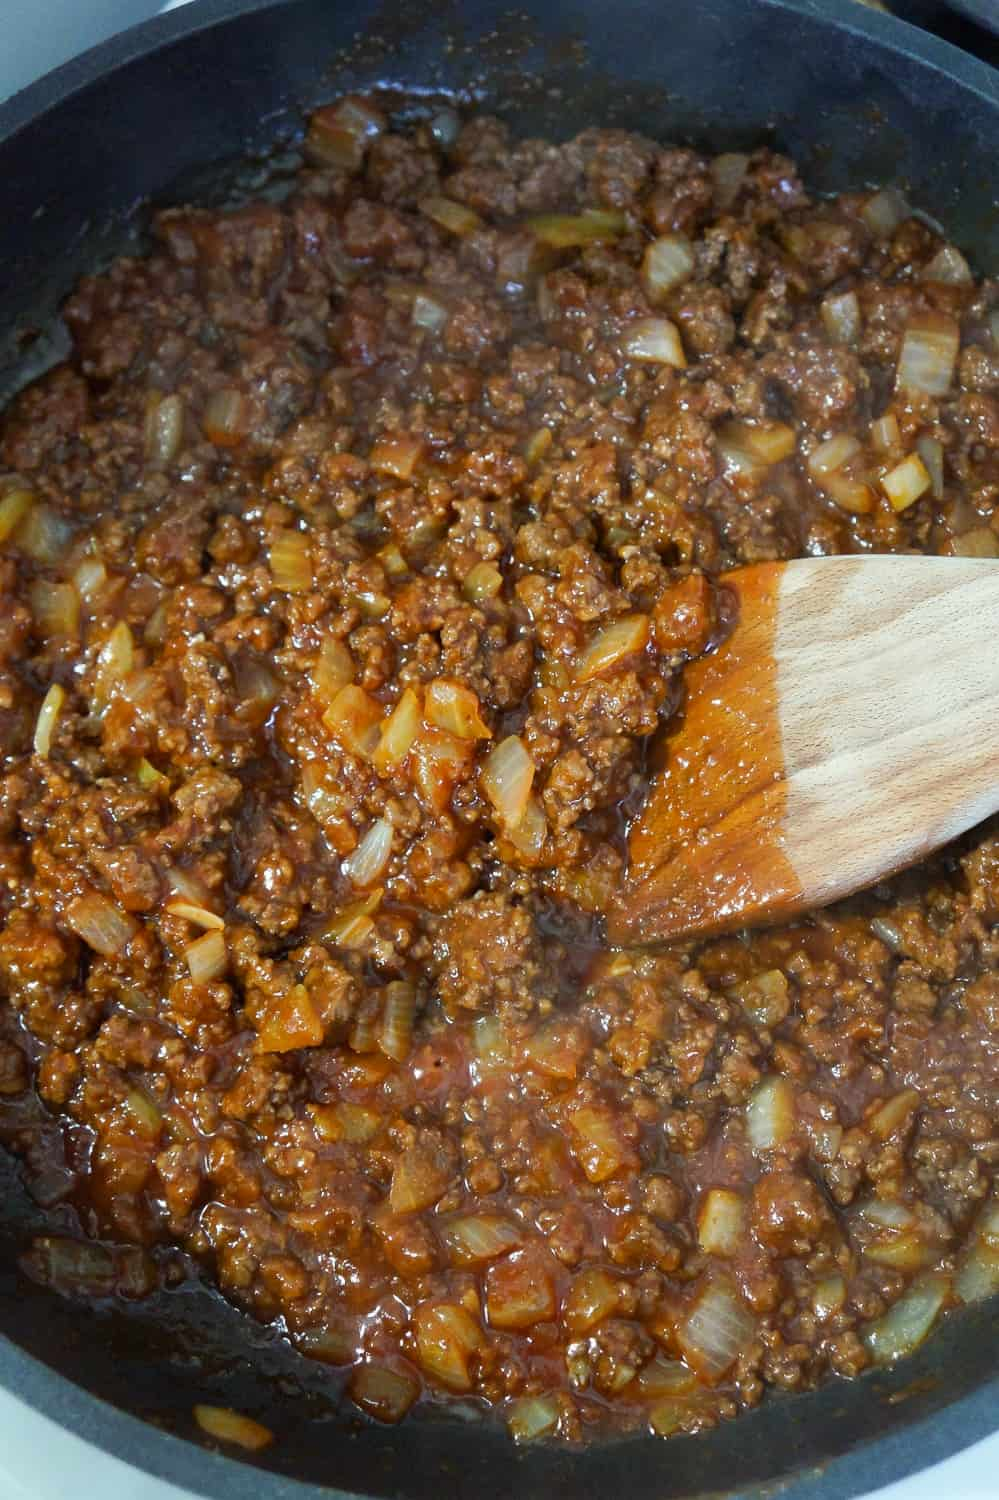 sloppy joe mixture in a frying pan